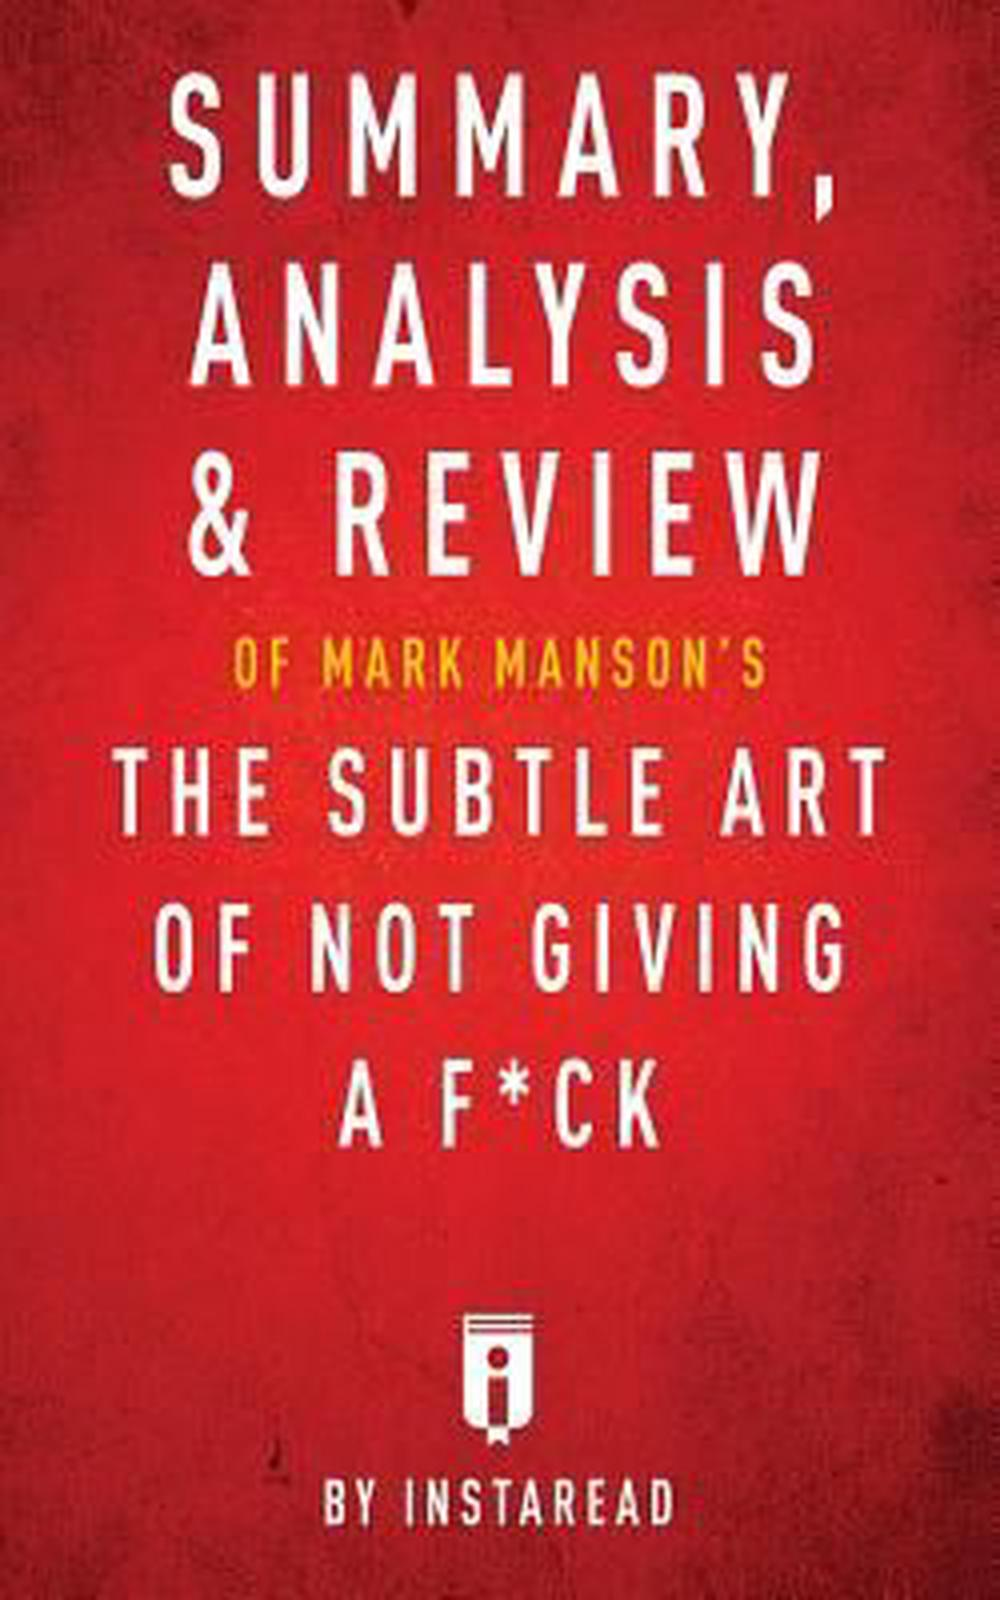 Summary, Analysis & Review of Mark Manson's The Subtle Art of Not Giving a F*ck by Instaread by Instaread, ISBN: 9781683786283